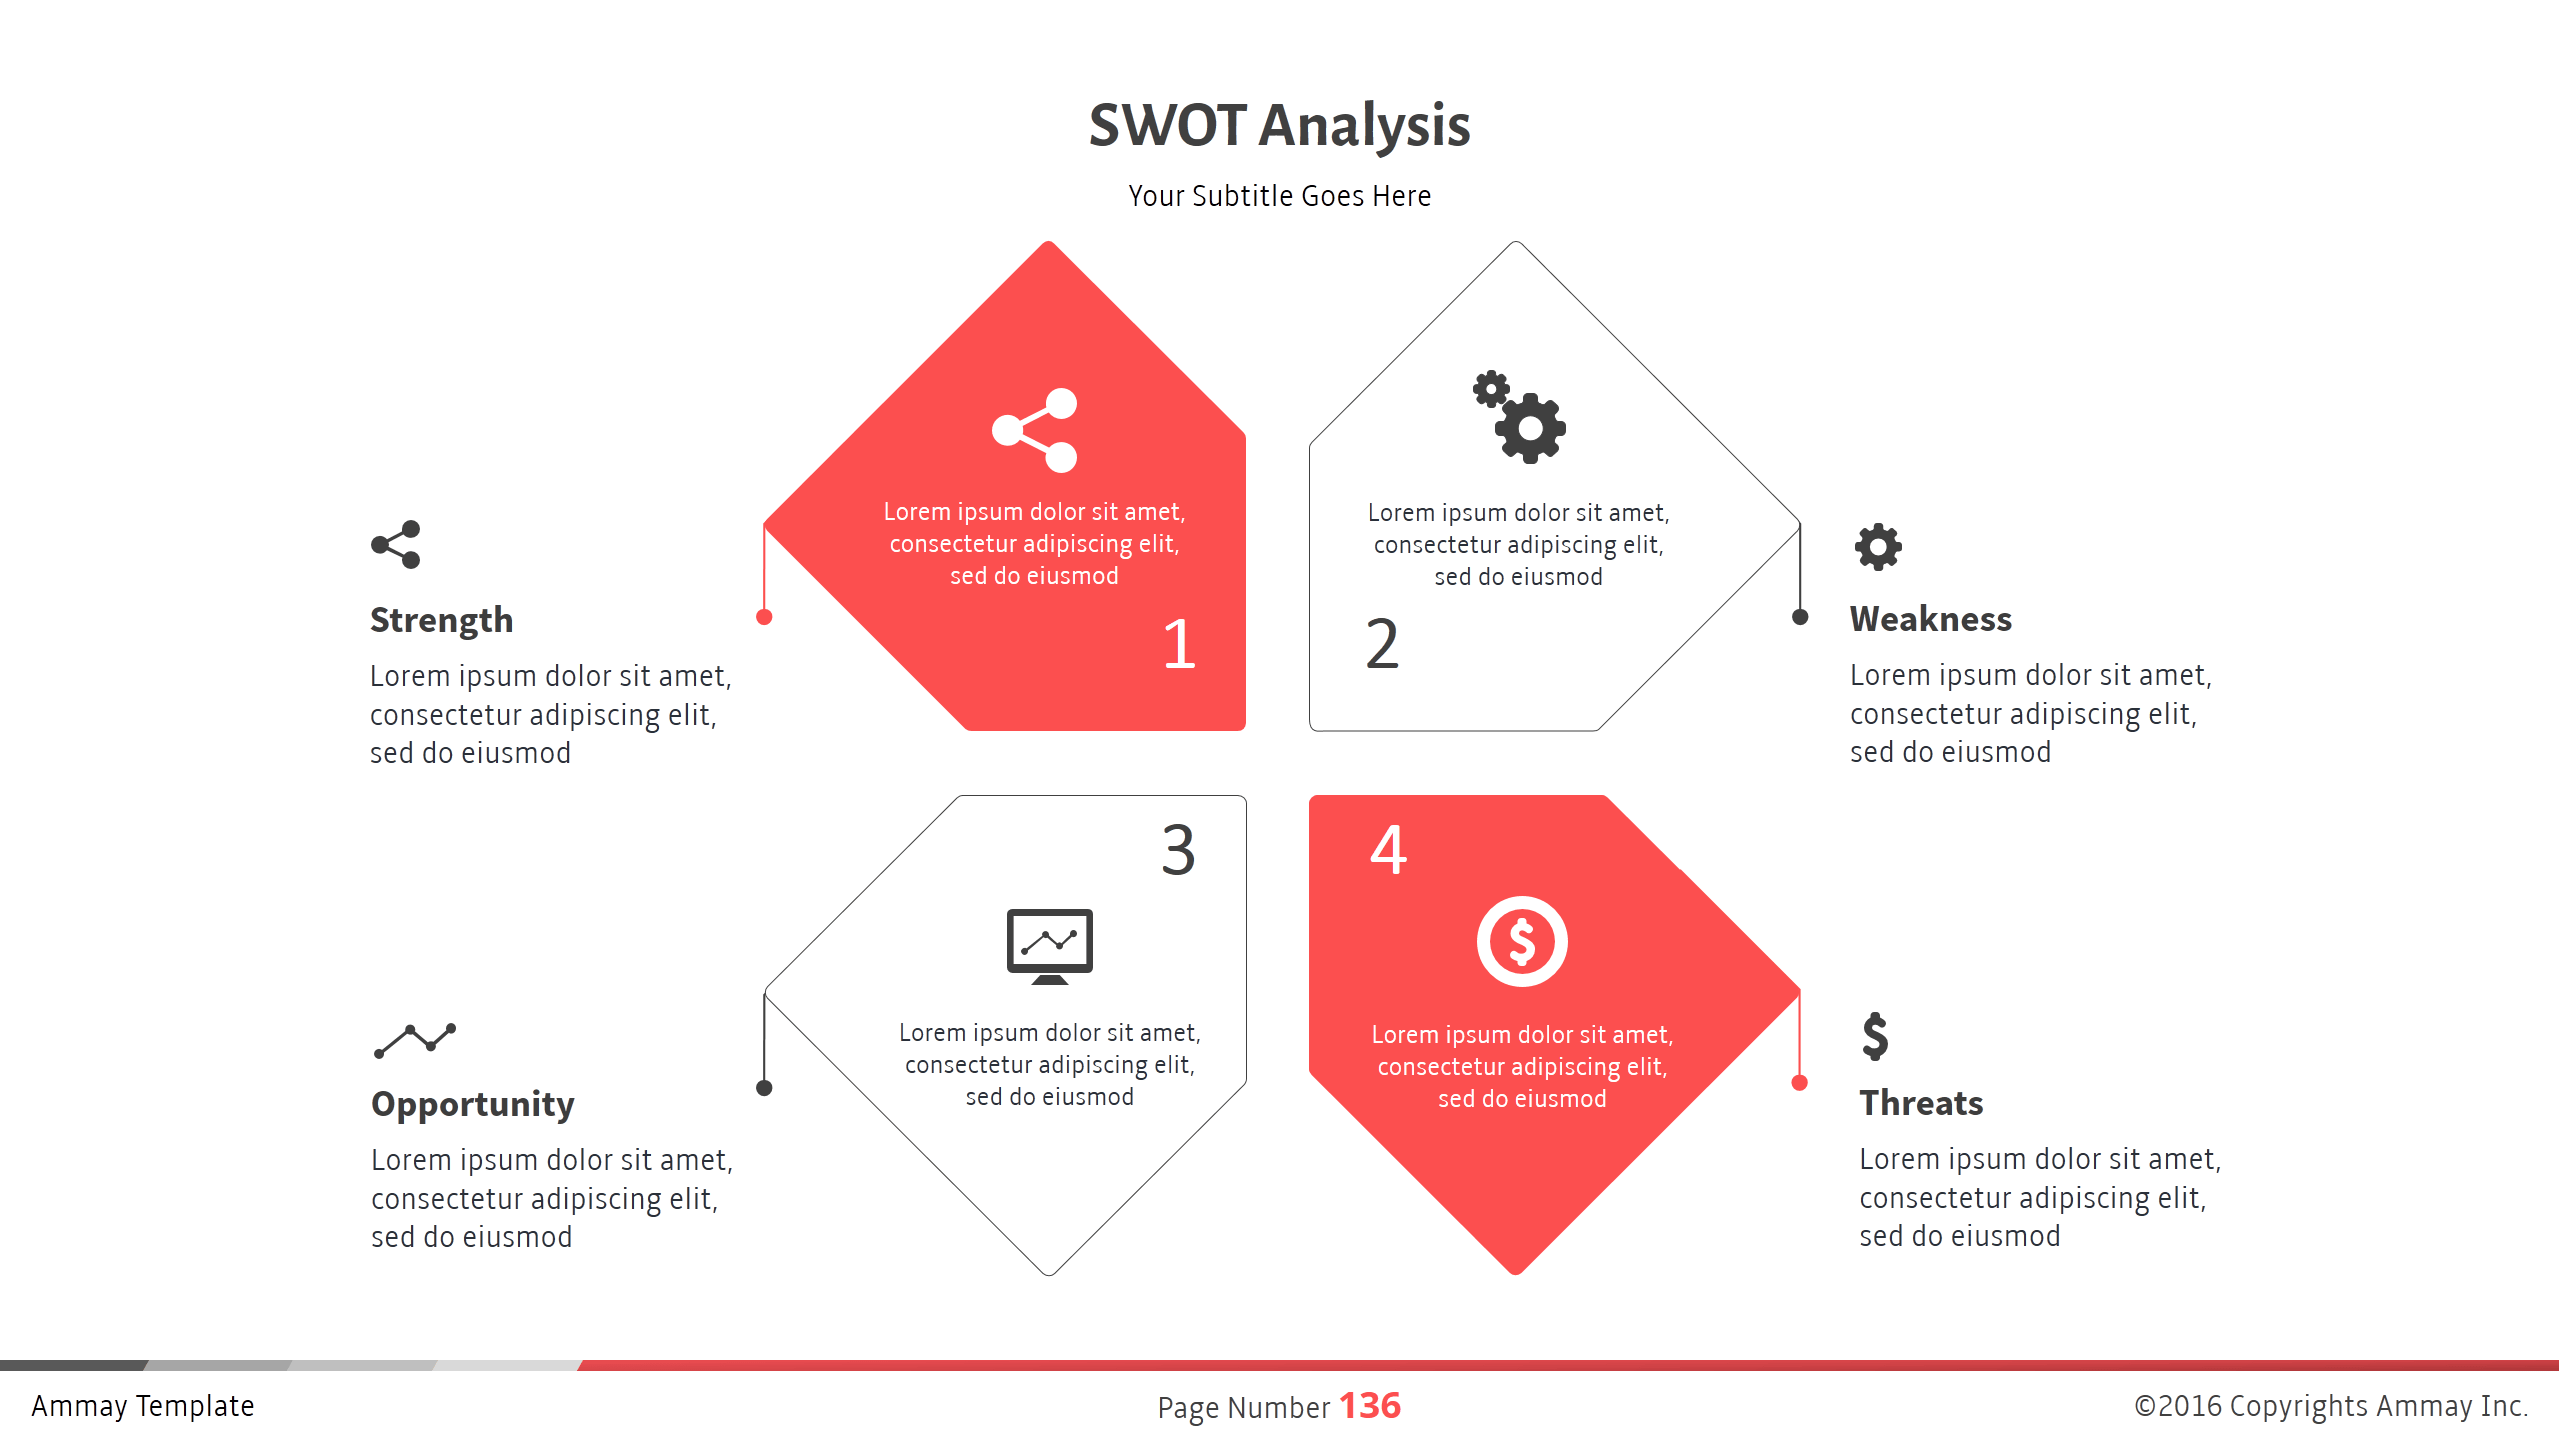 balfour beatty pestle and swot analysis Balfour beatty, plc what is swot a swot analysis is useful in bringing together an analysis of both the internal and a pestle analysis provides an external.